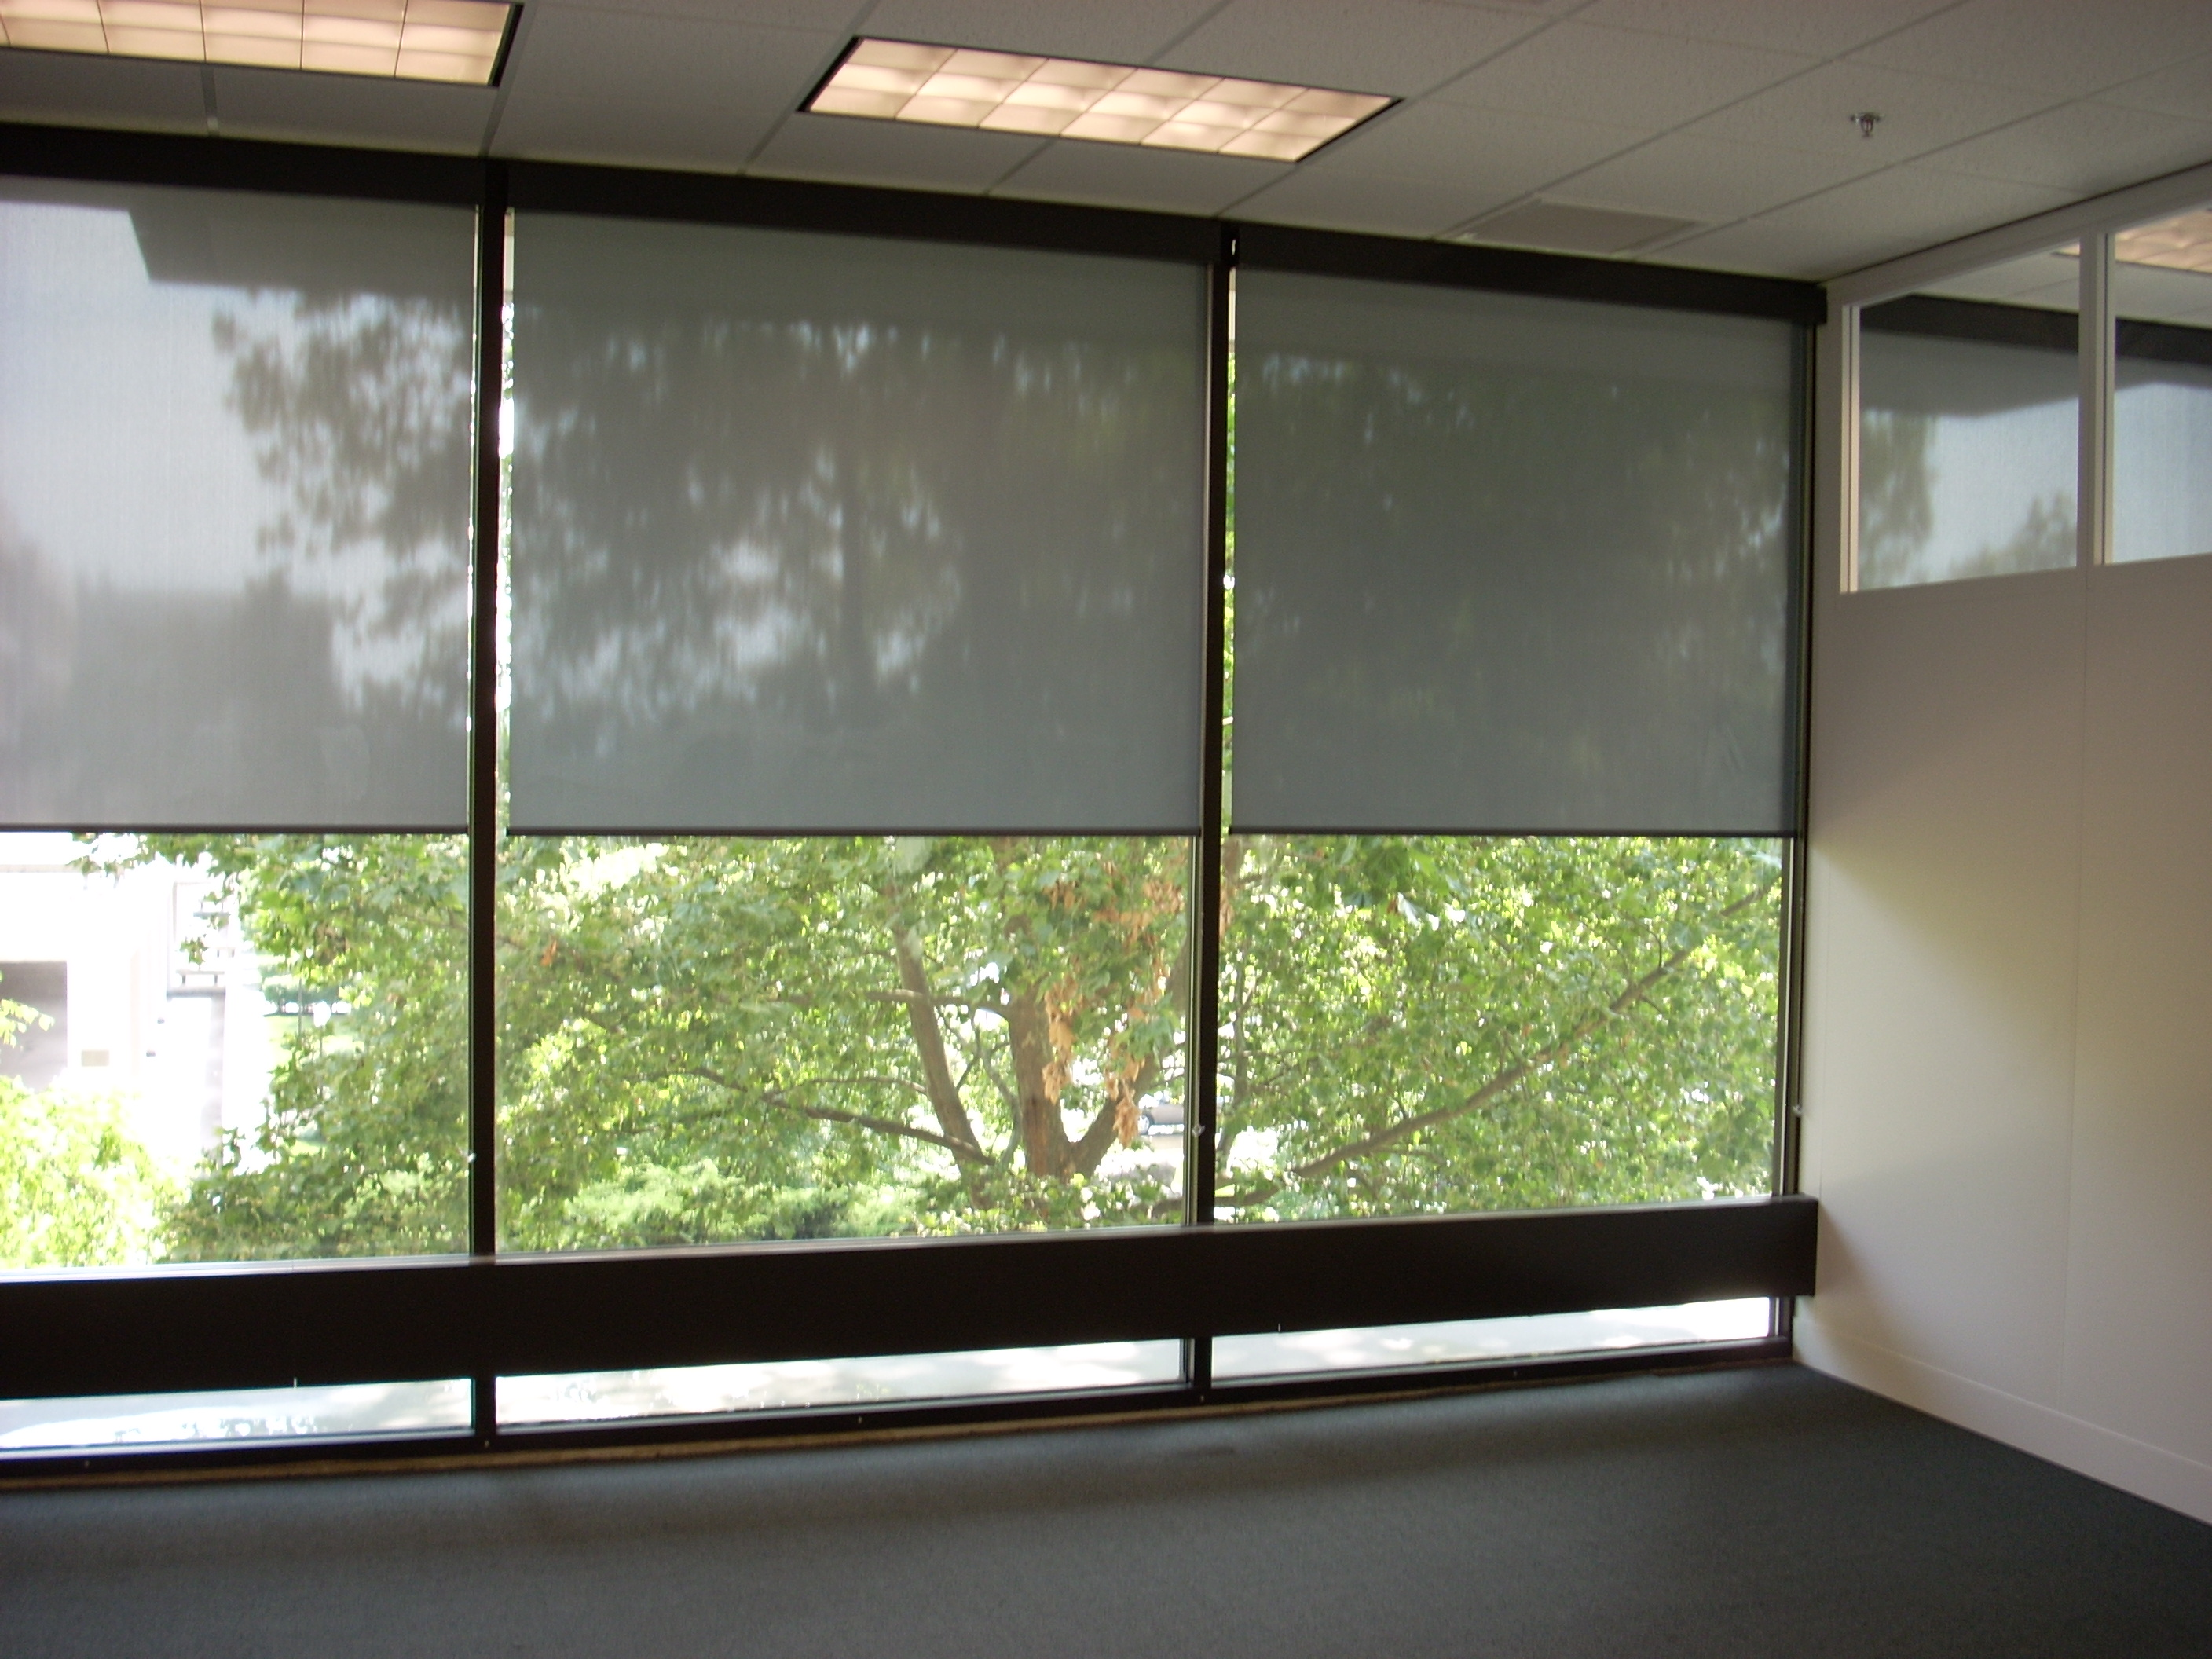 sale custom bend drapery valances budget coverings and blinds clean window for at myhomedesign in win or oregon classic